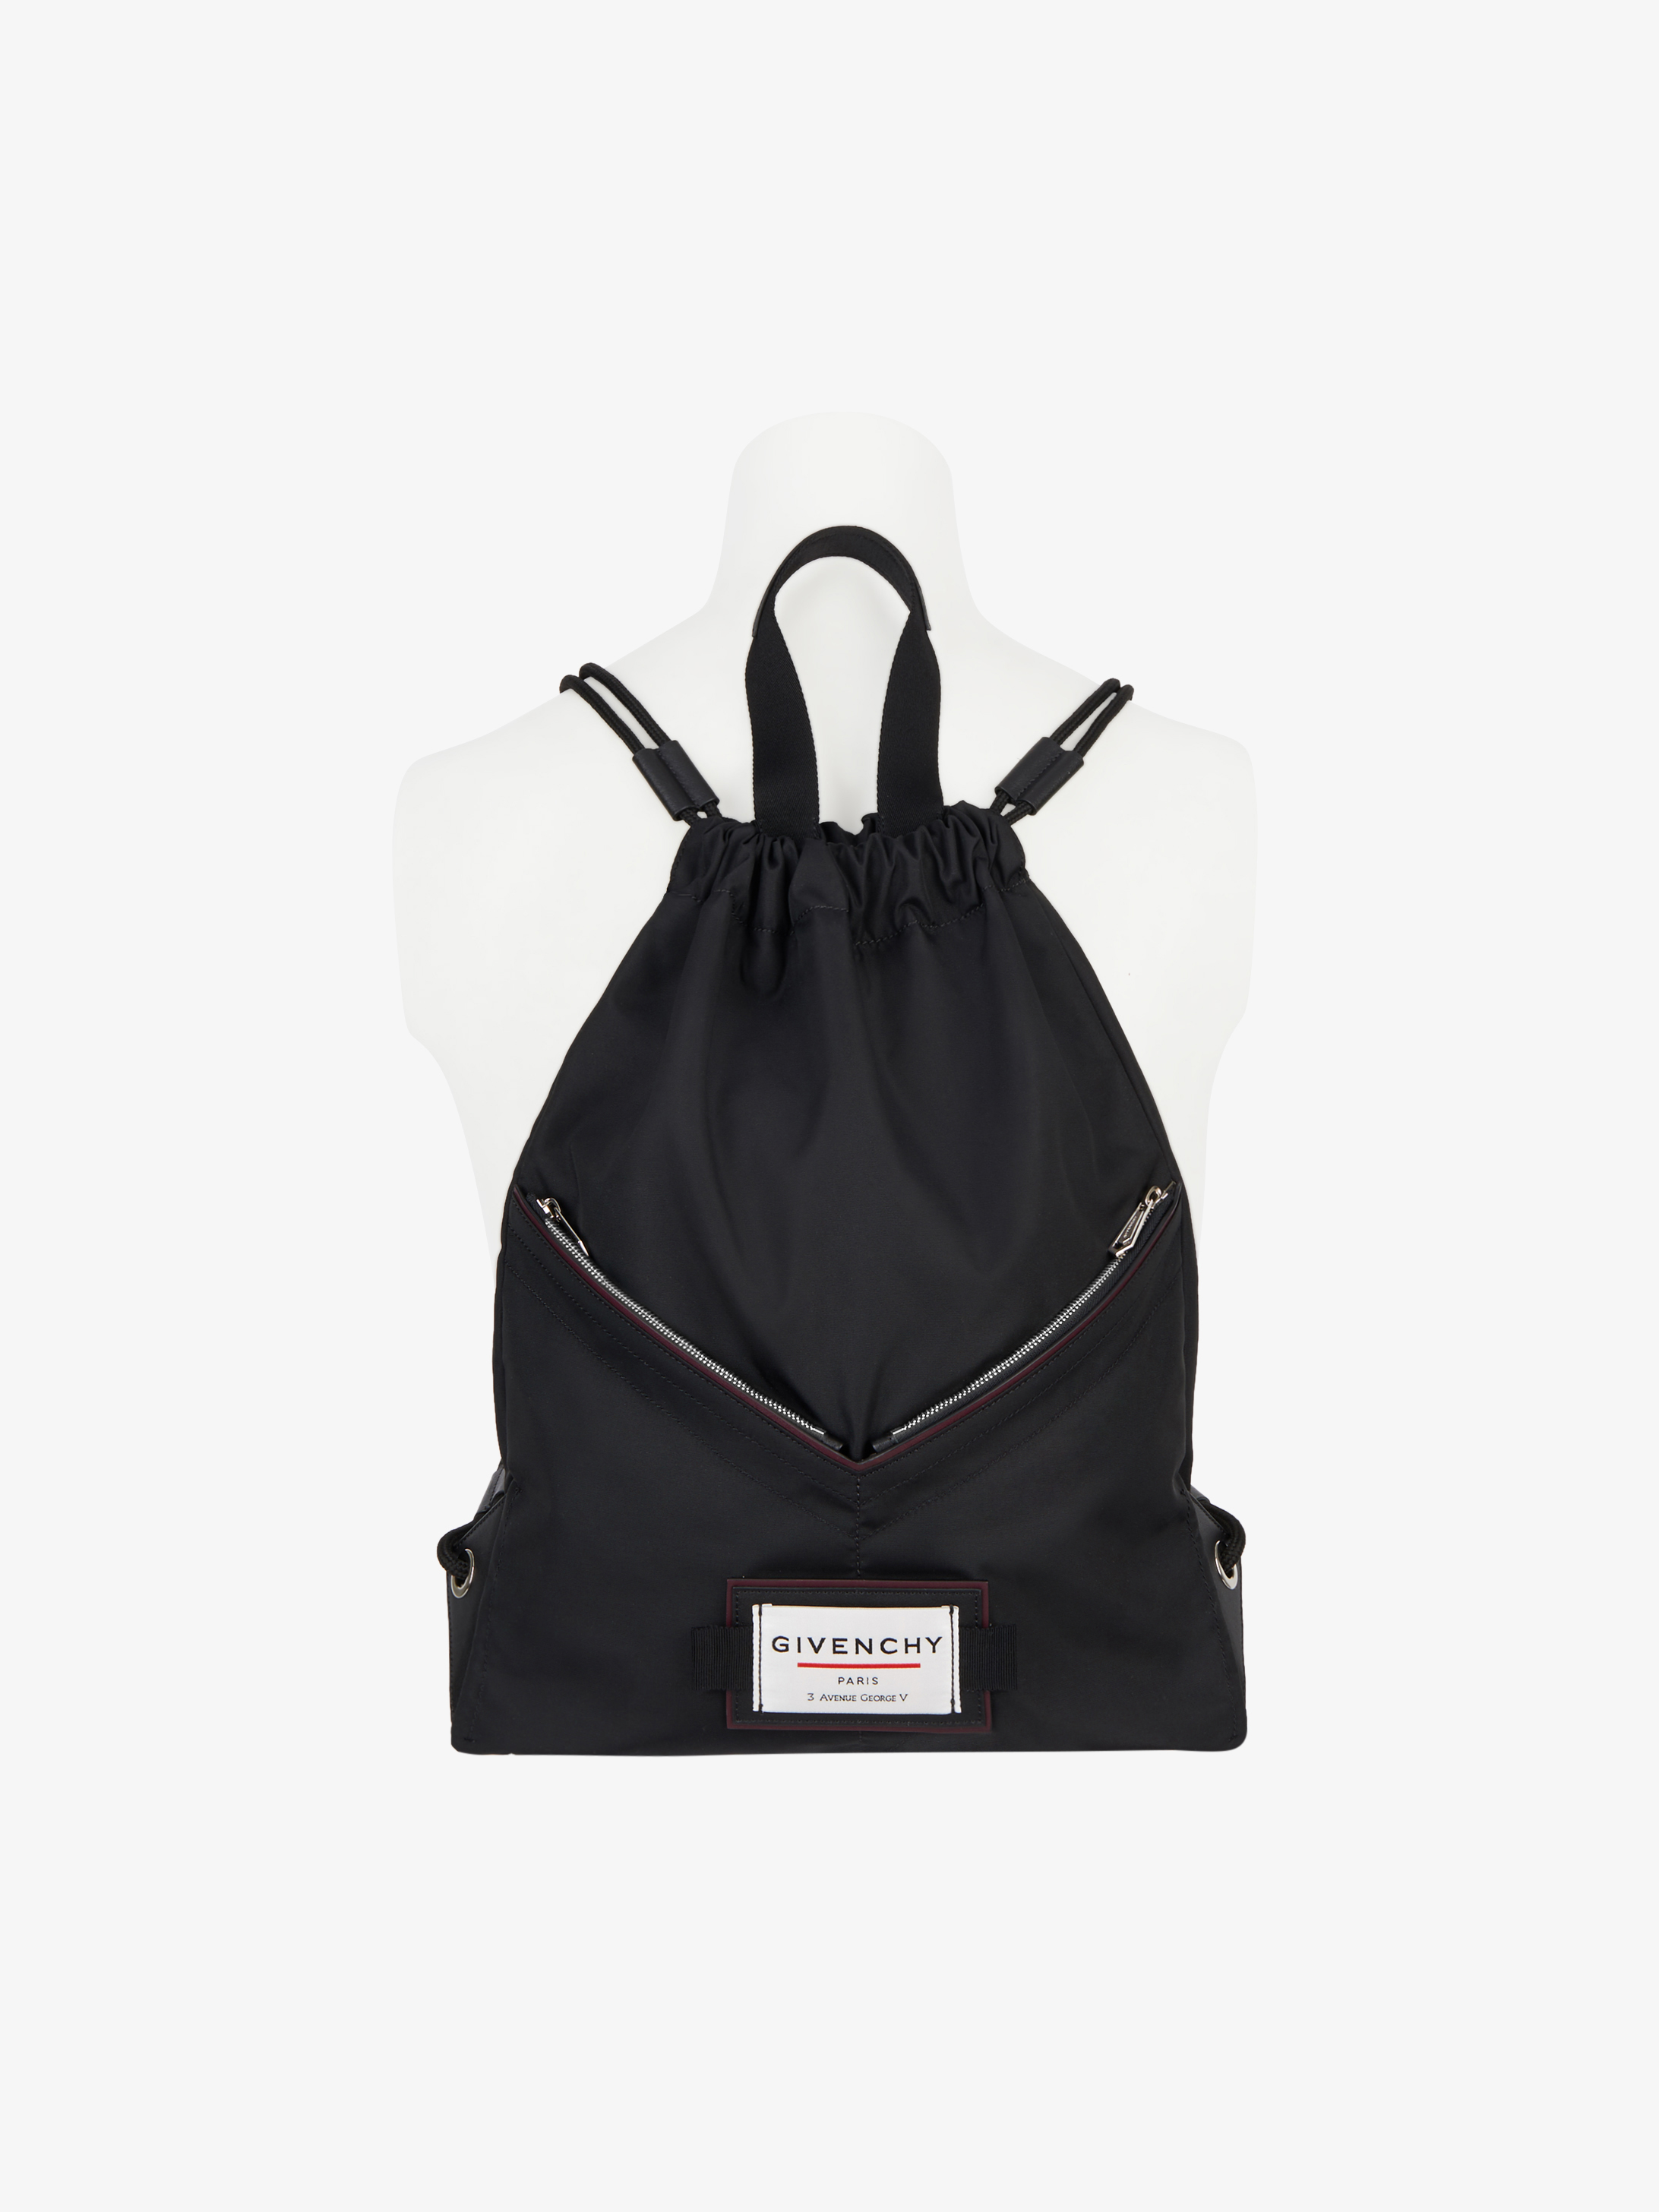 GIVENCHY DOWNTOWN drawstring in nylon